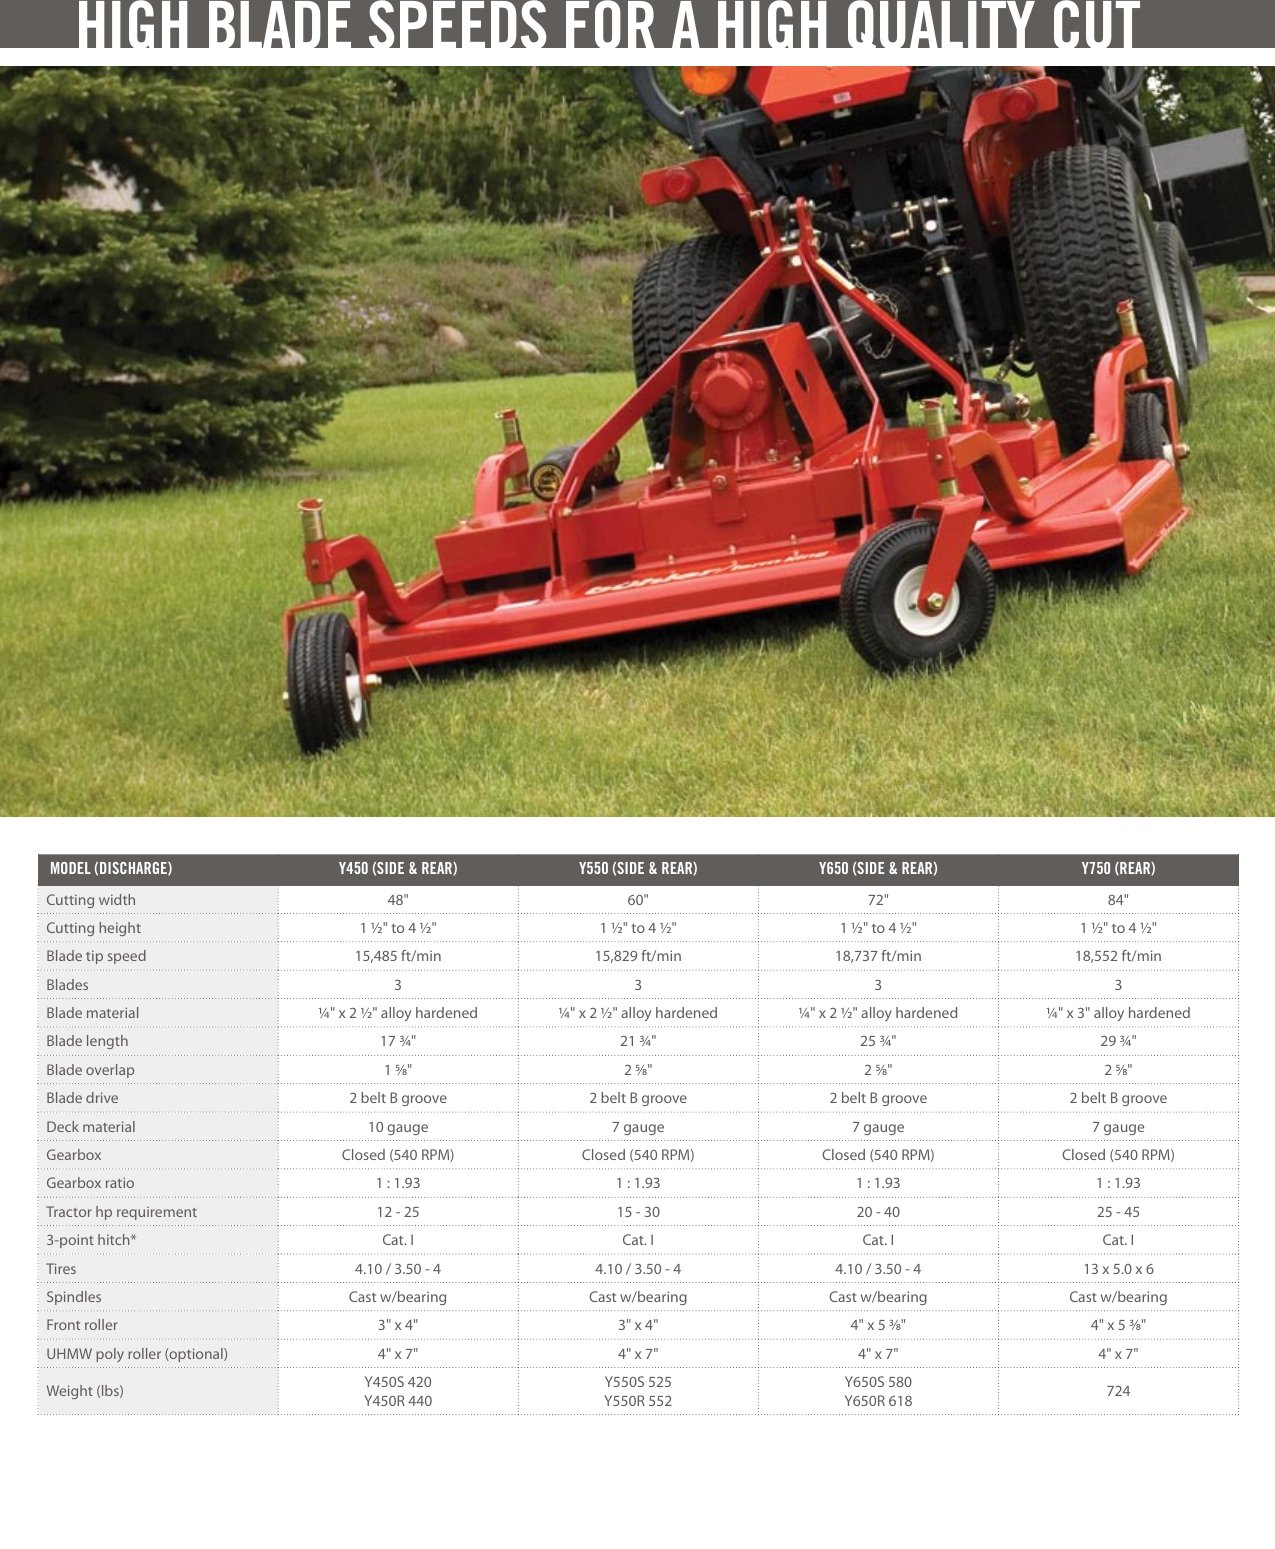 Buhler Y650 Users Manual